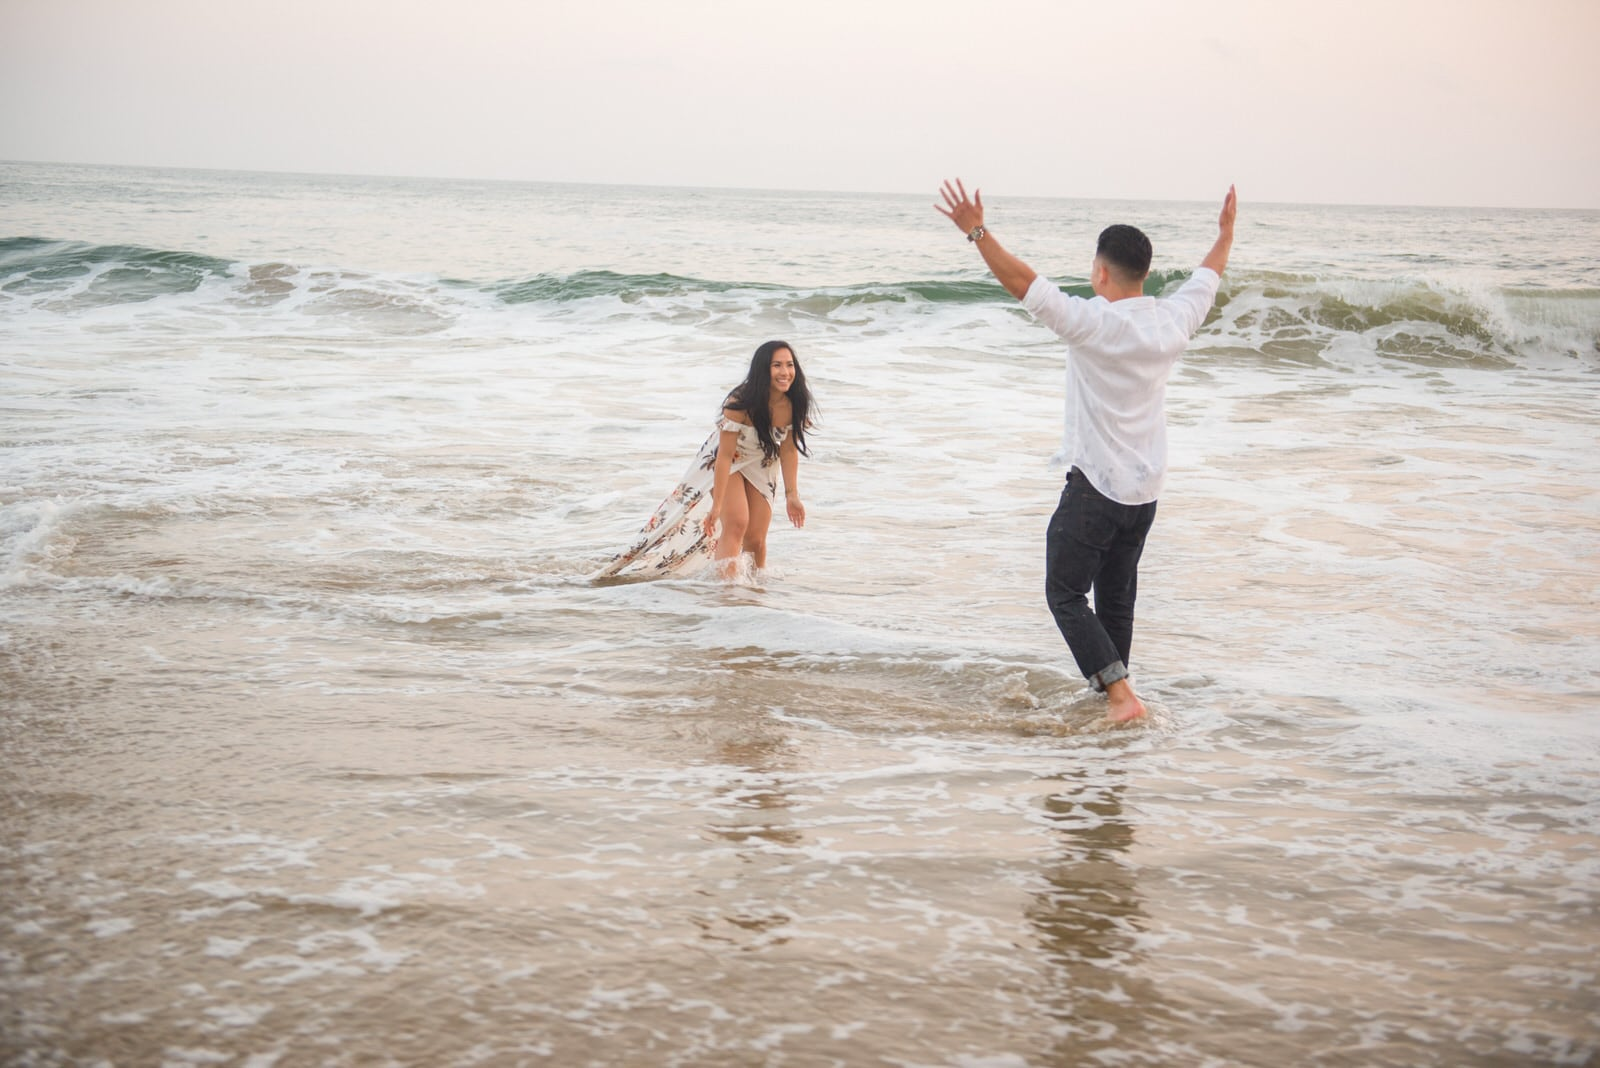 The couple is walking through the water at the beach.